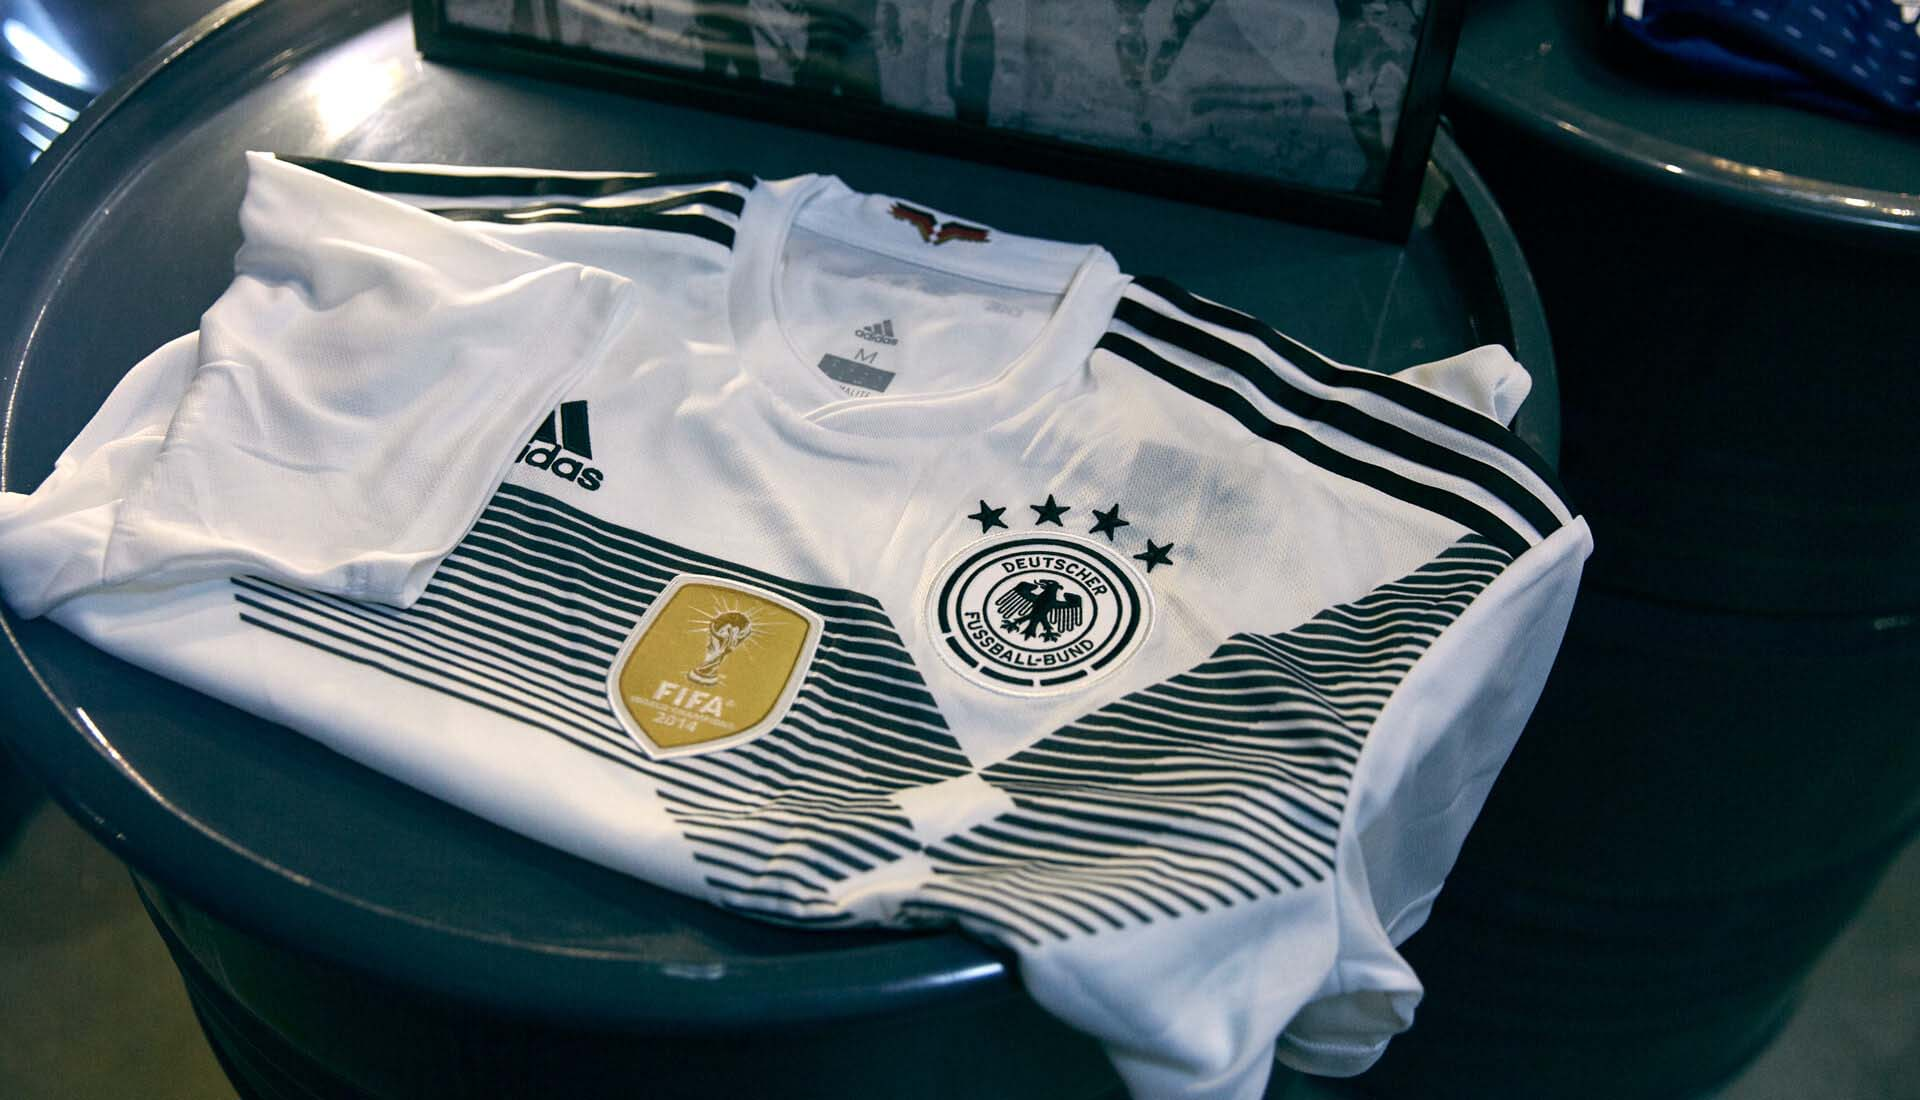 e7d213fdc7d Brand Share of 2018 World Cup Kits - SoccerBible